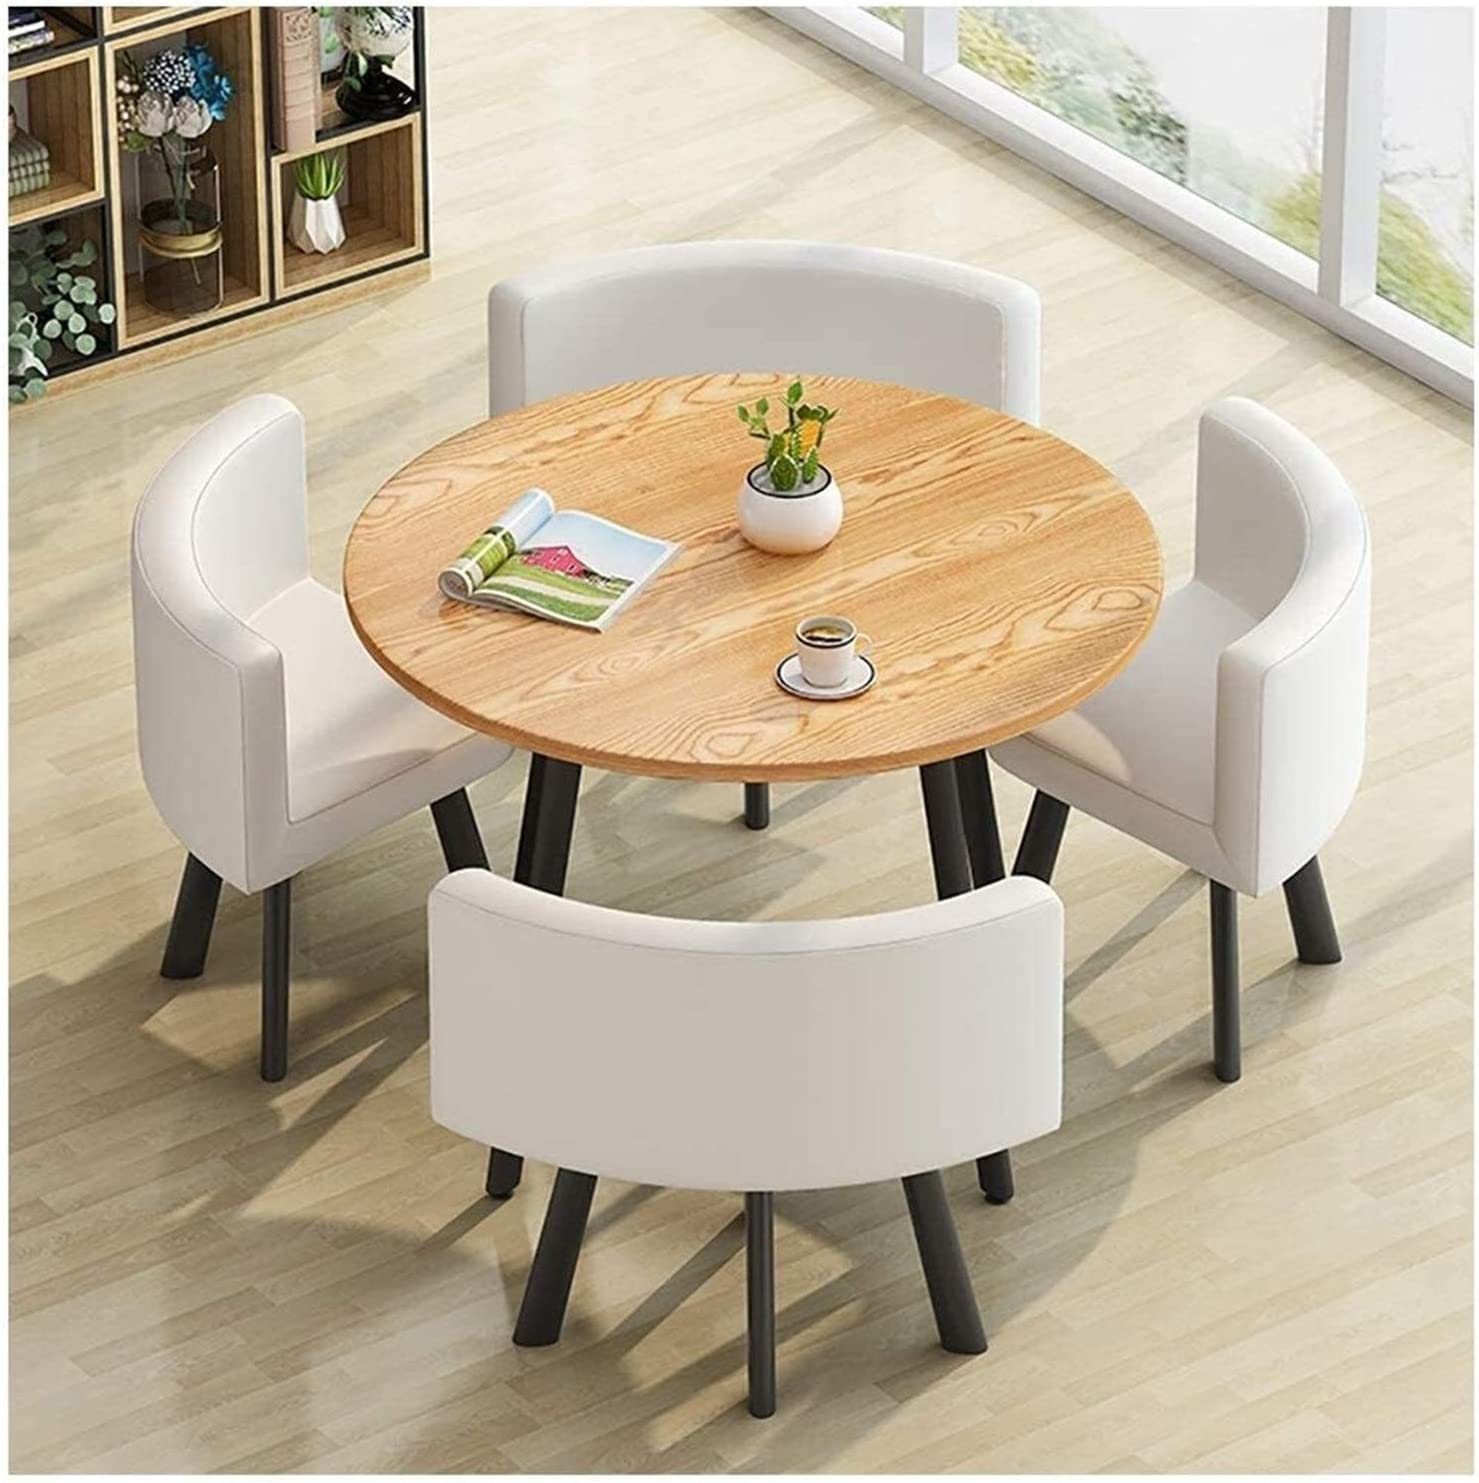 Modern Furniture Dining latest Room 40% OFF Cheap Sale Set Home Table Chair and Com Round